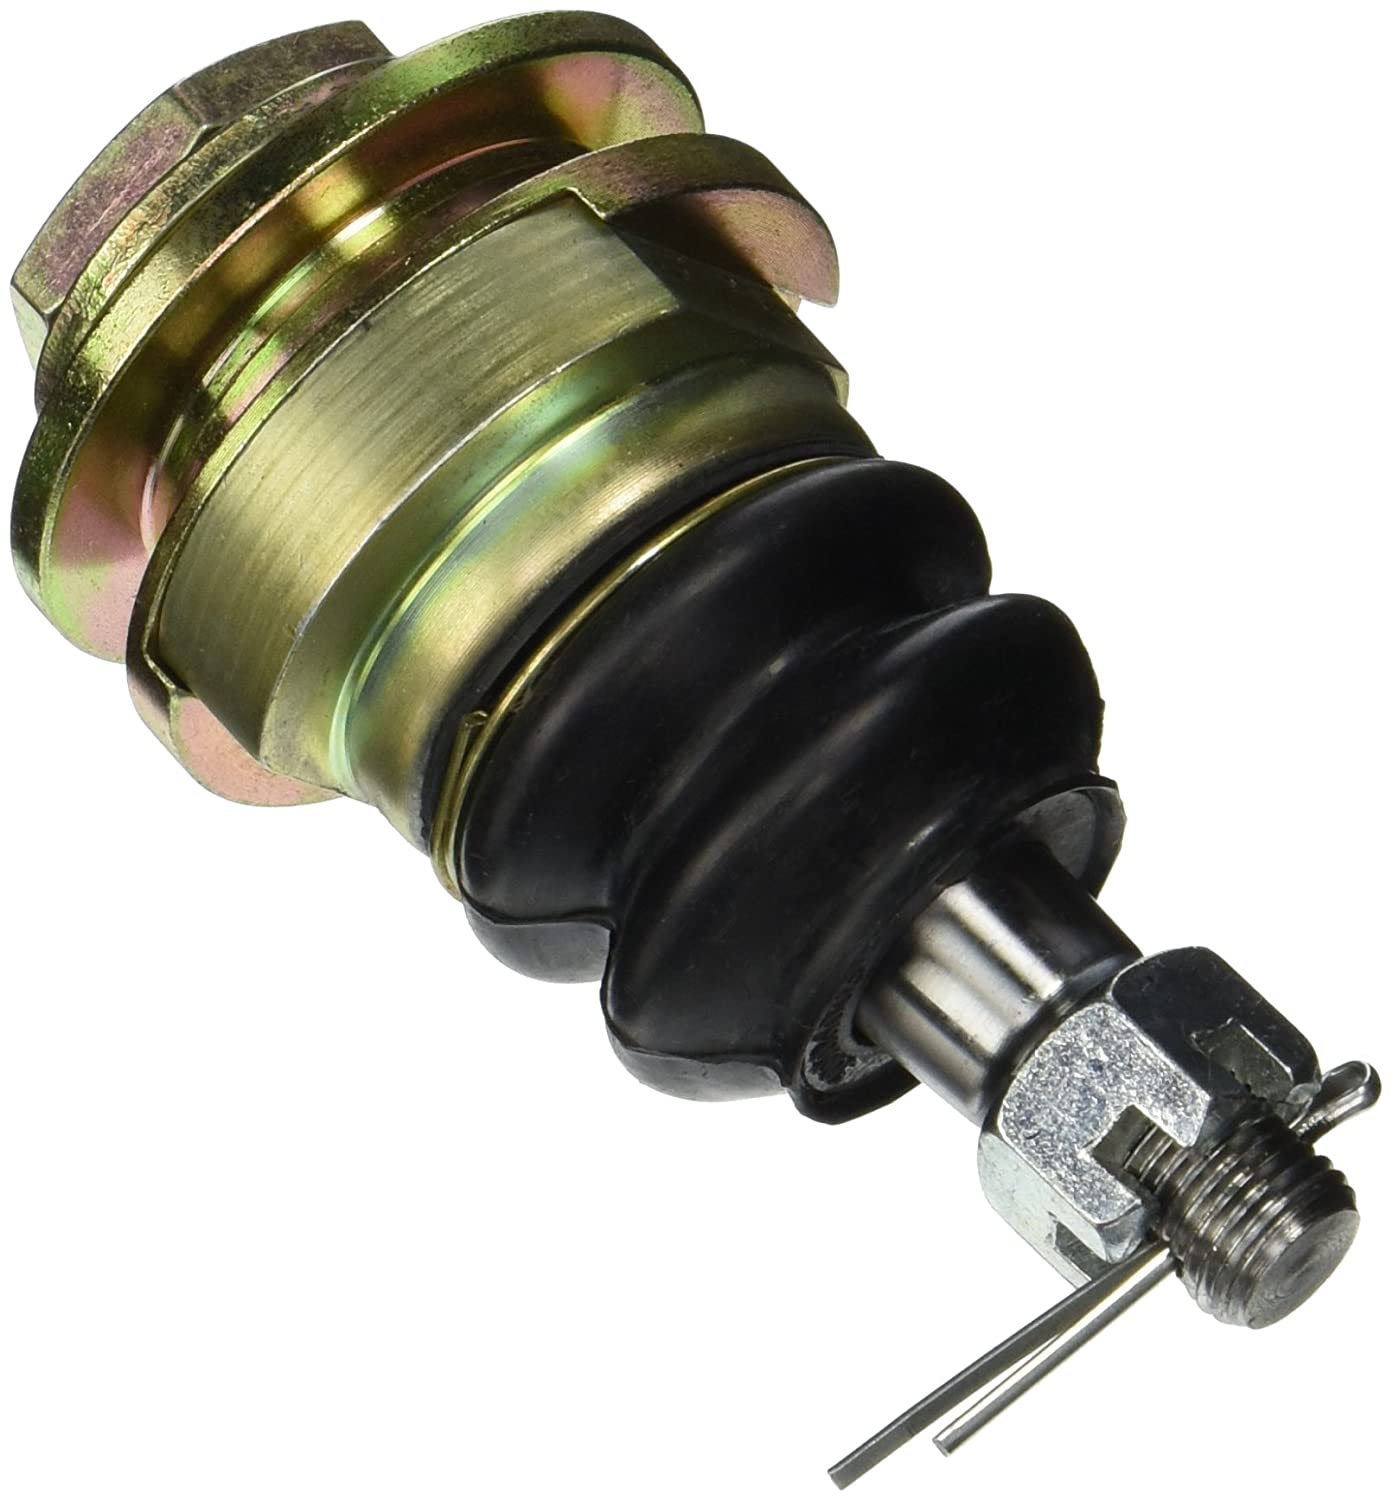 Specialty Products Company 67220 1.5/° Adjustable Ball Joint for Honda S2000